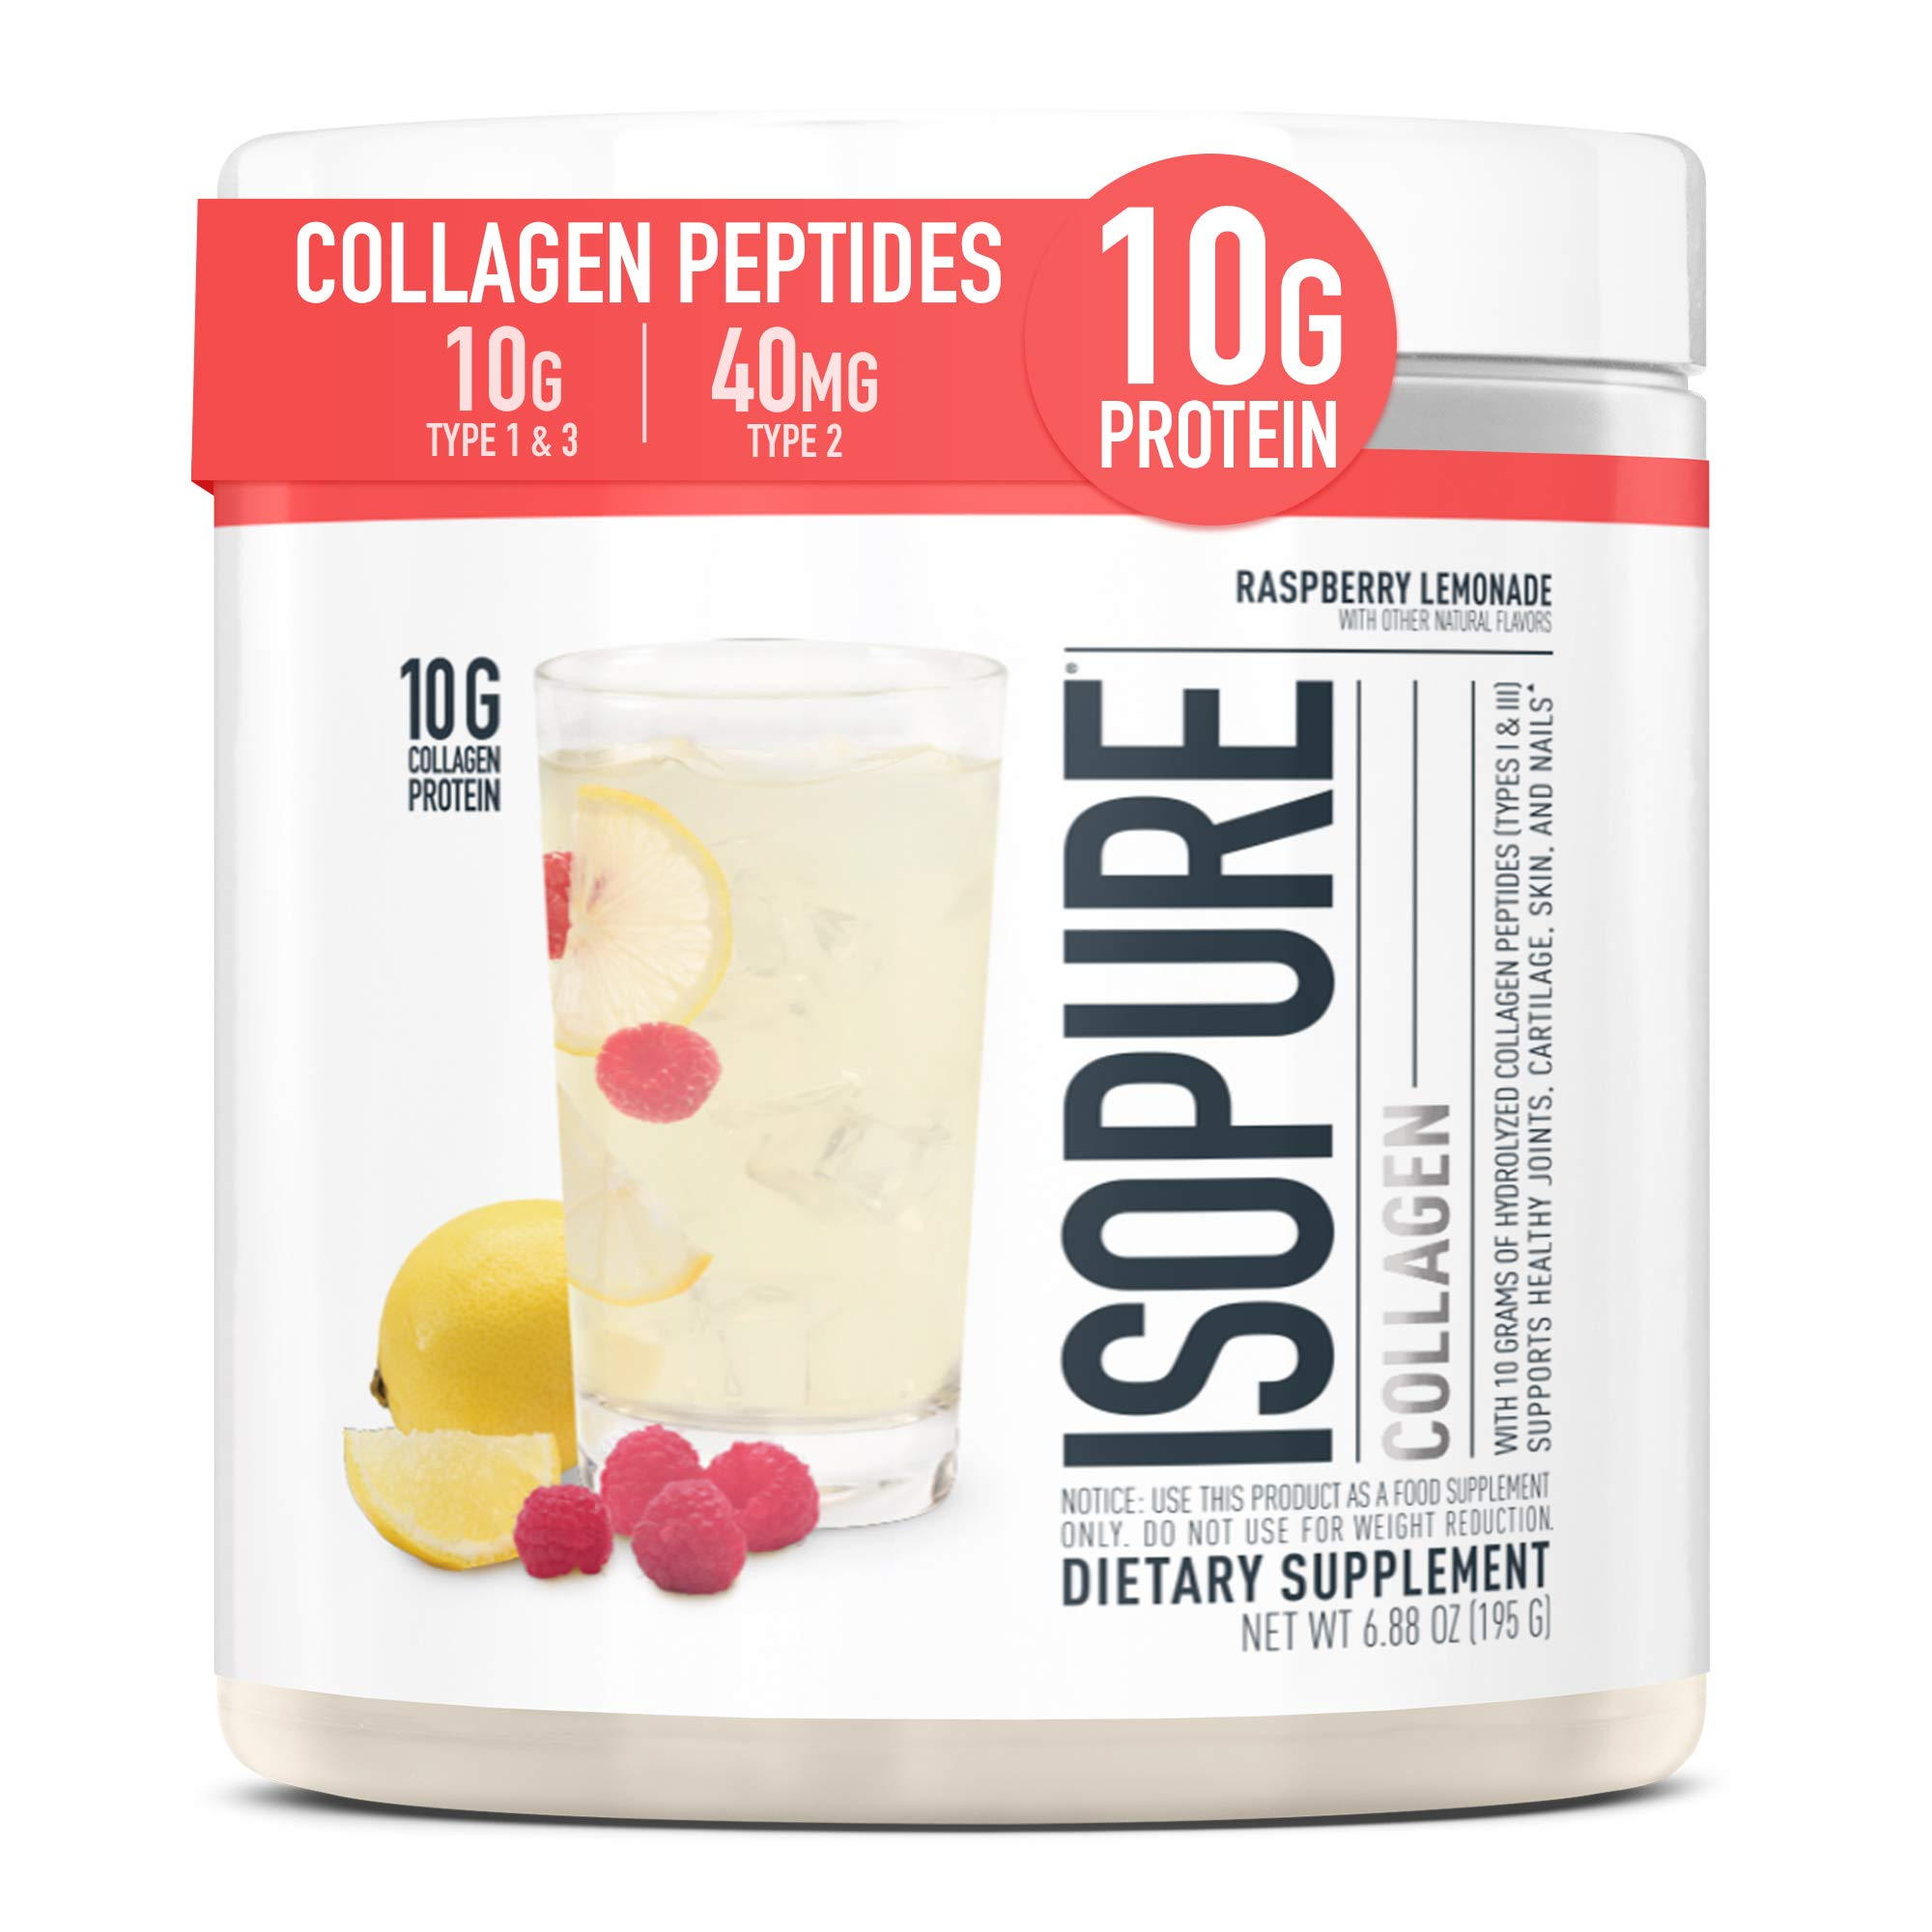 Isopure Multi Collagen Peptides Protein Powder, Vitamin C for Immune Support, Type 1, 2 & 3, Keto Friendly, Recovery Support, Joints, Cartilage, Skin & Nails - Gluten Free, Raspberry Lemonade, 15 Serv